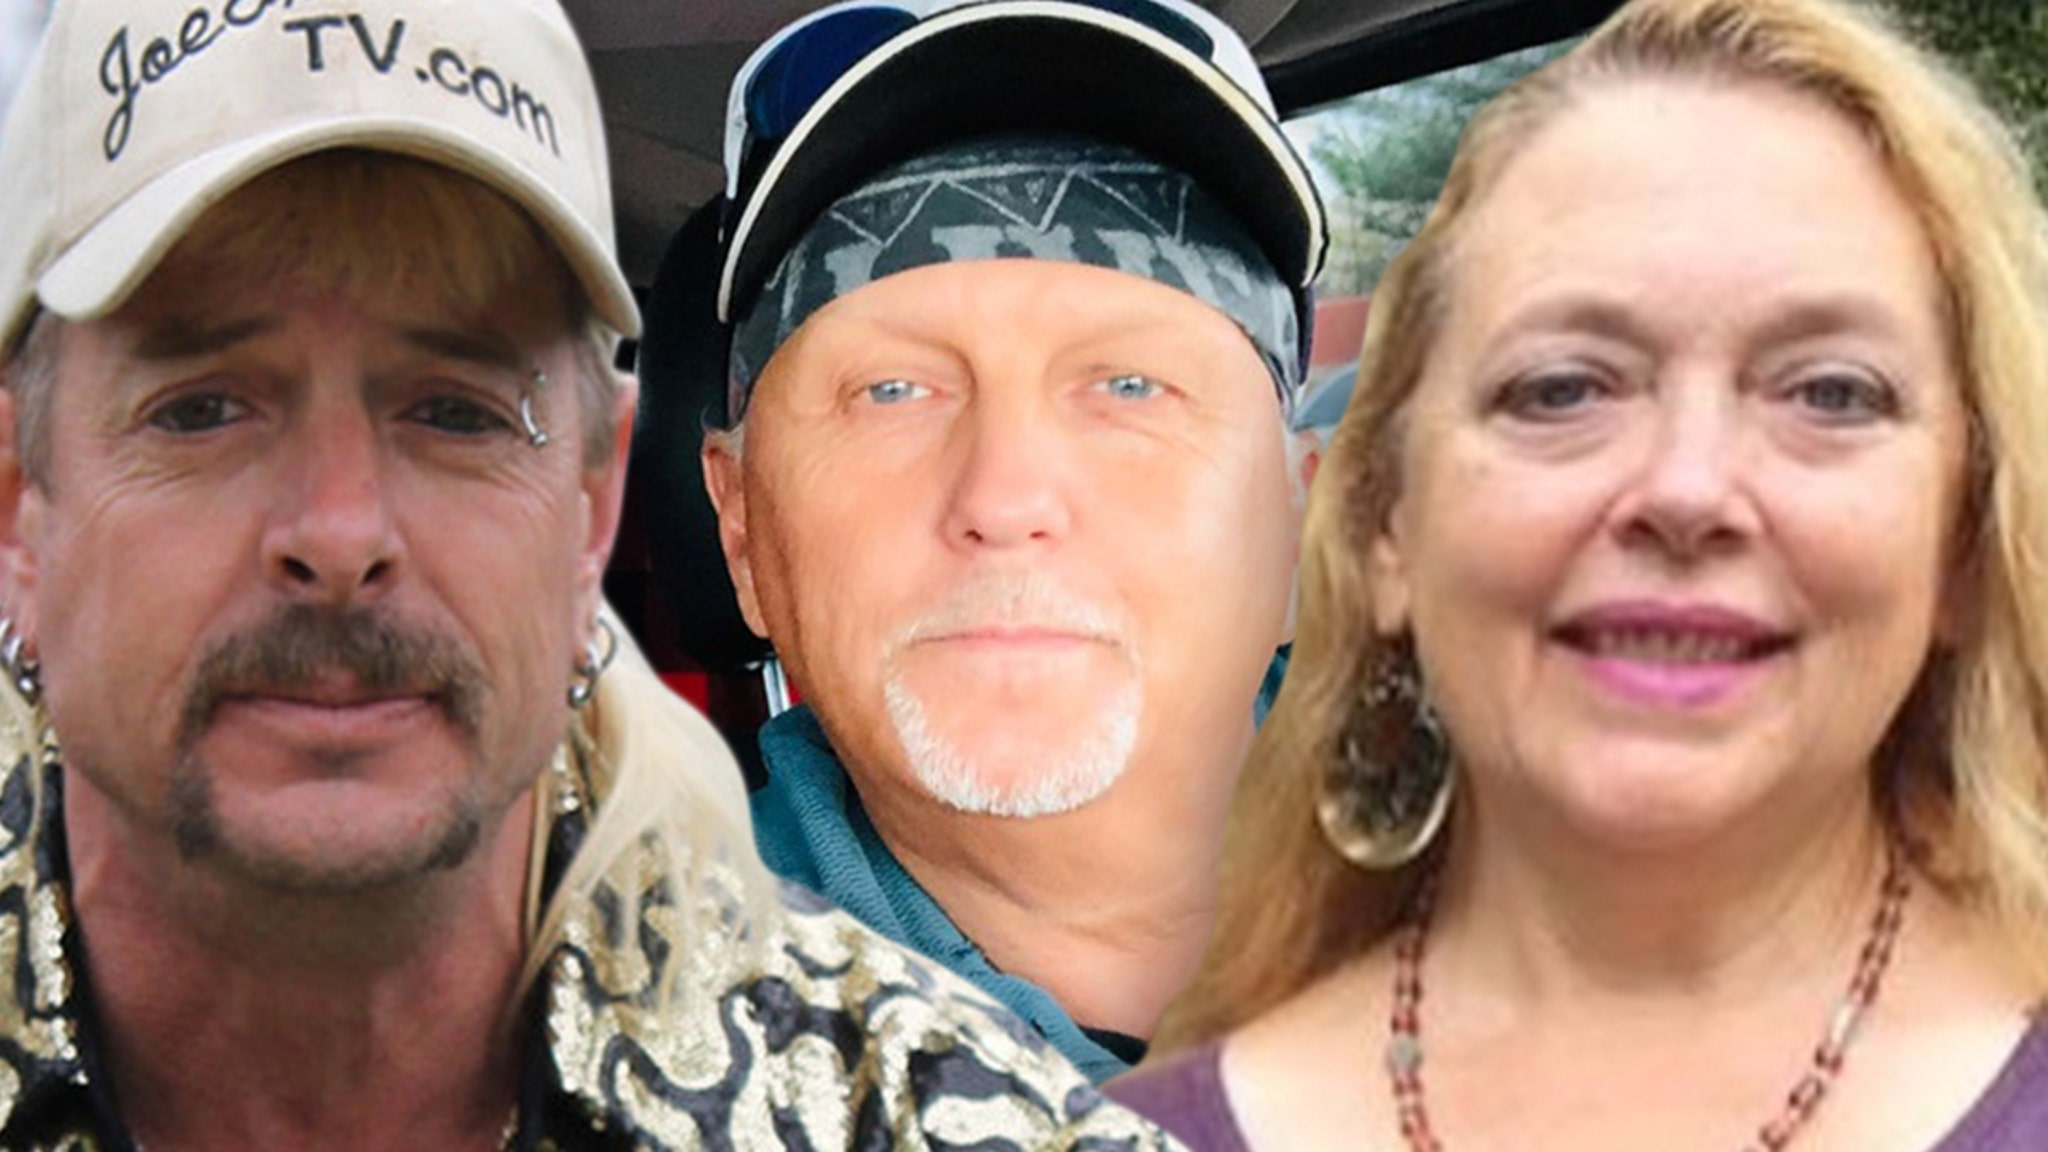 Carole Baskin Taking Over Joe Exotic's Old Zoo!!! Judge Gives Jeff Lowe the Boot